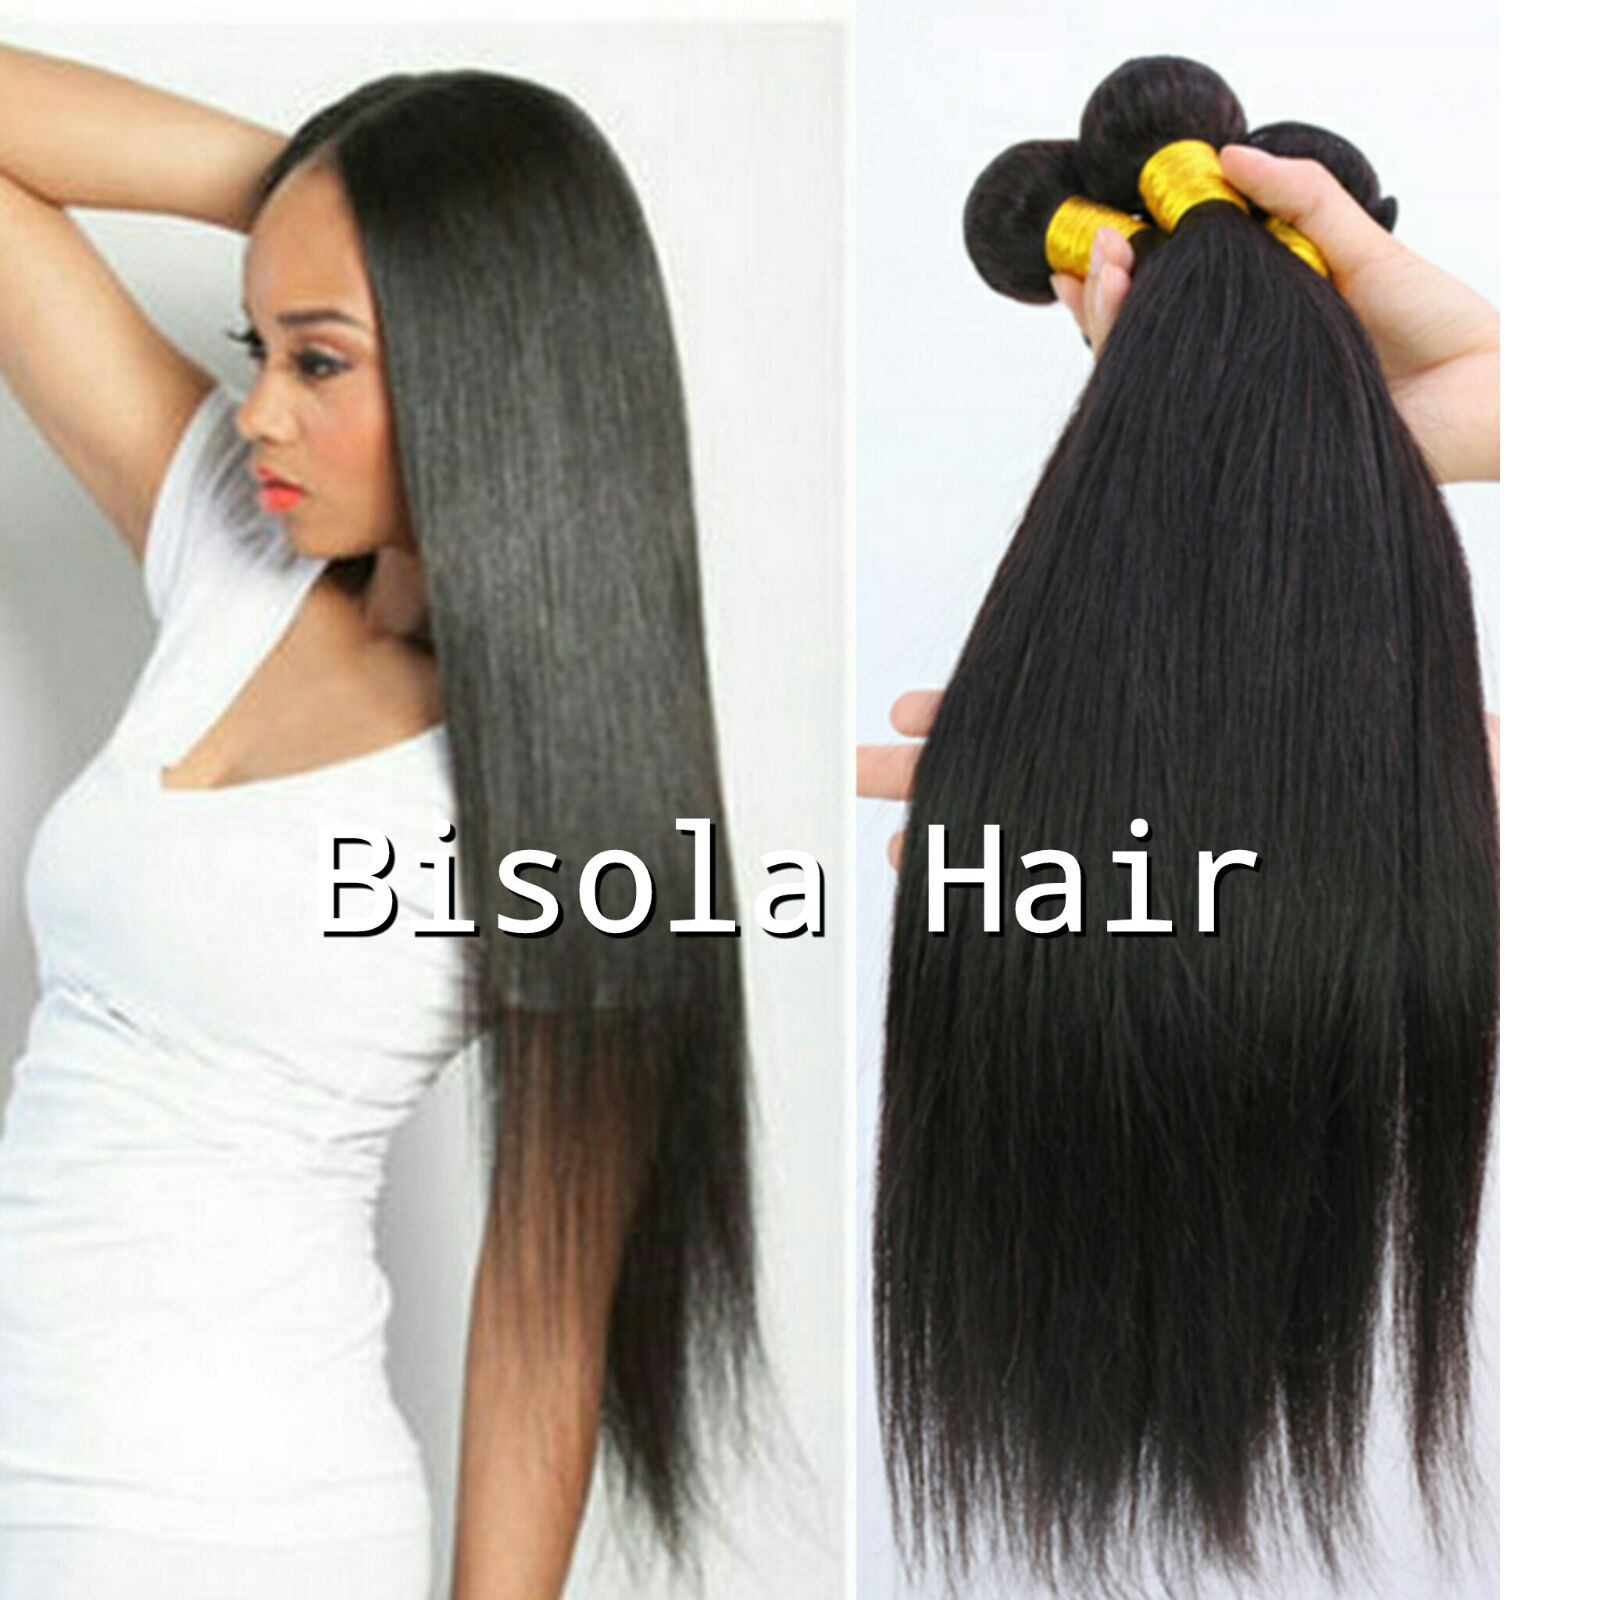 Bisola Hair Hair Specialist Good Quality Affordable Prices